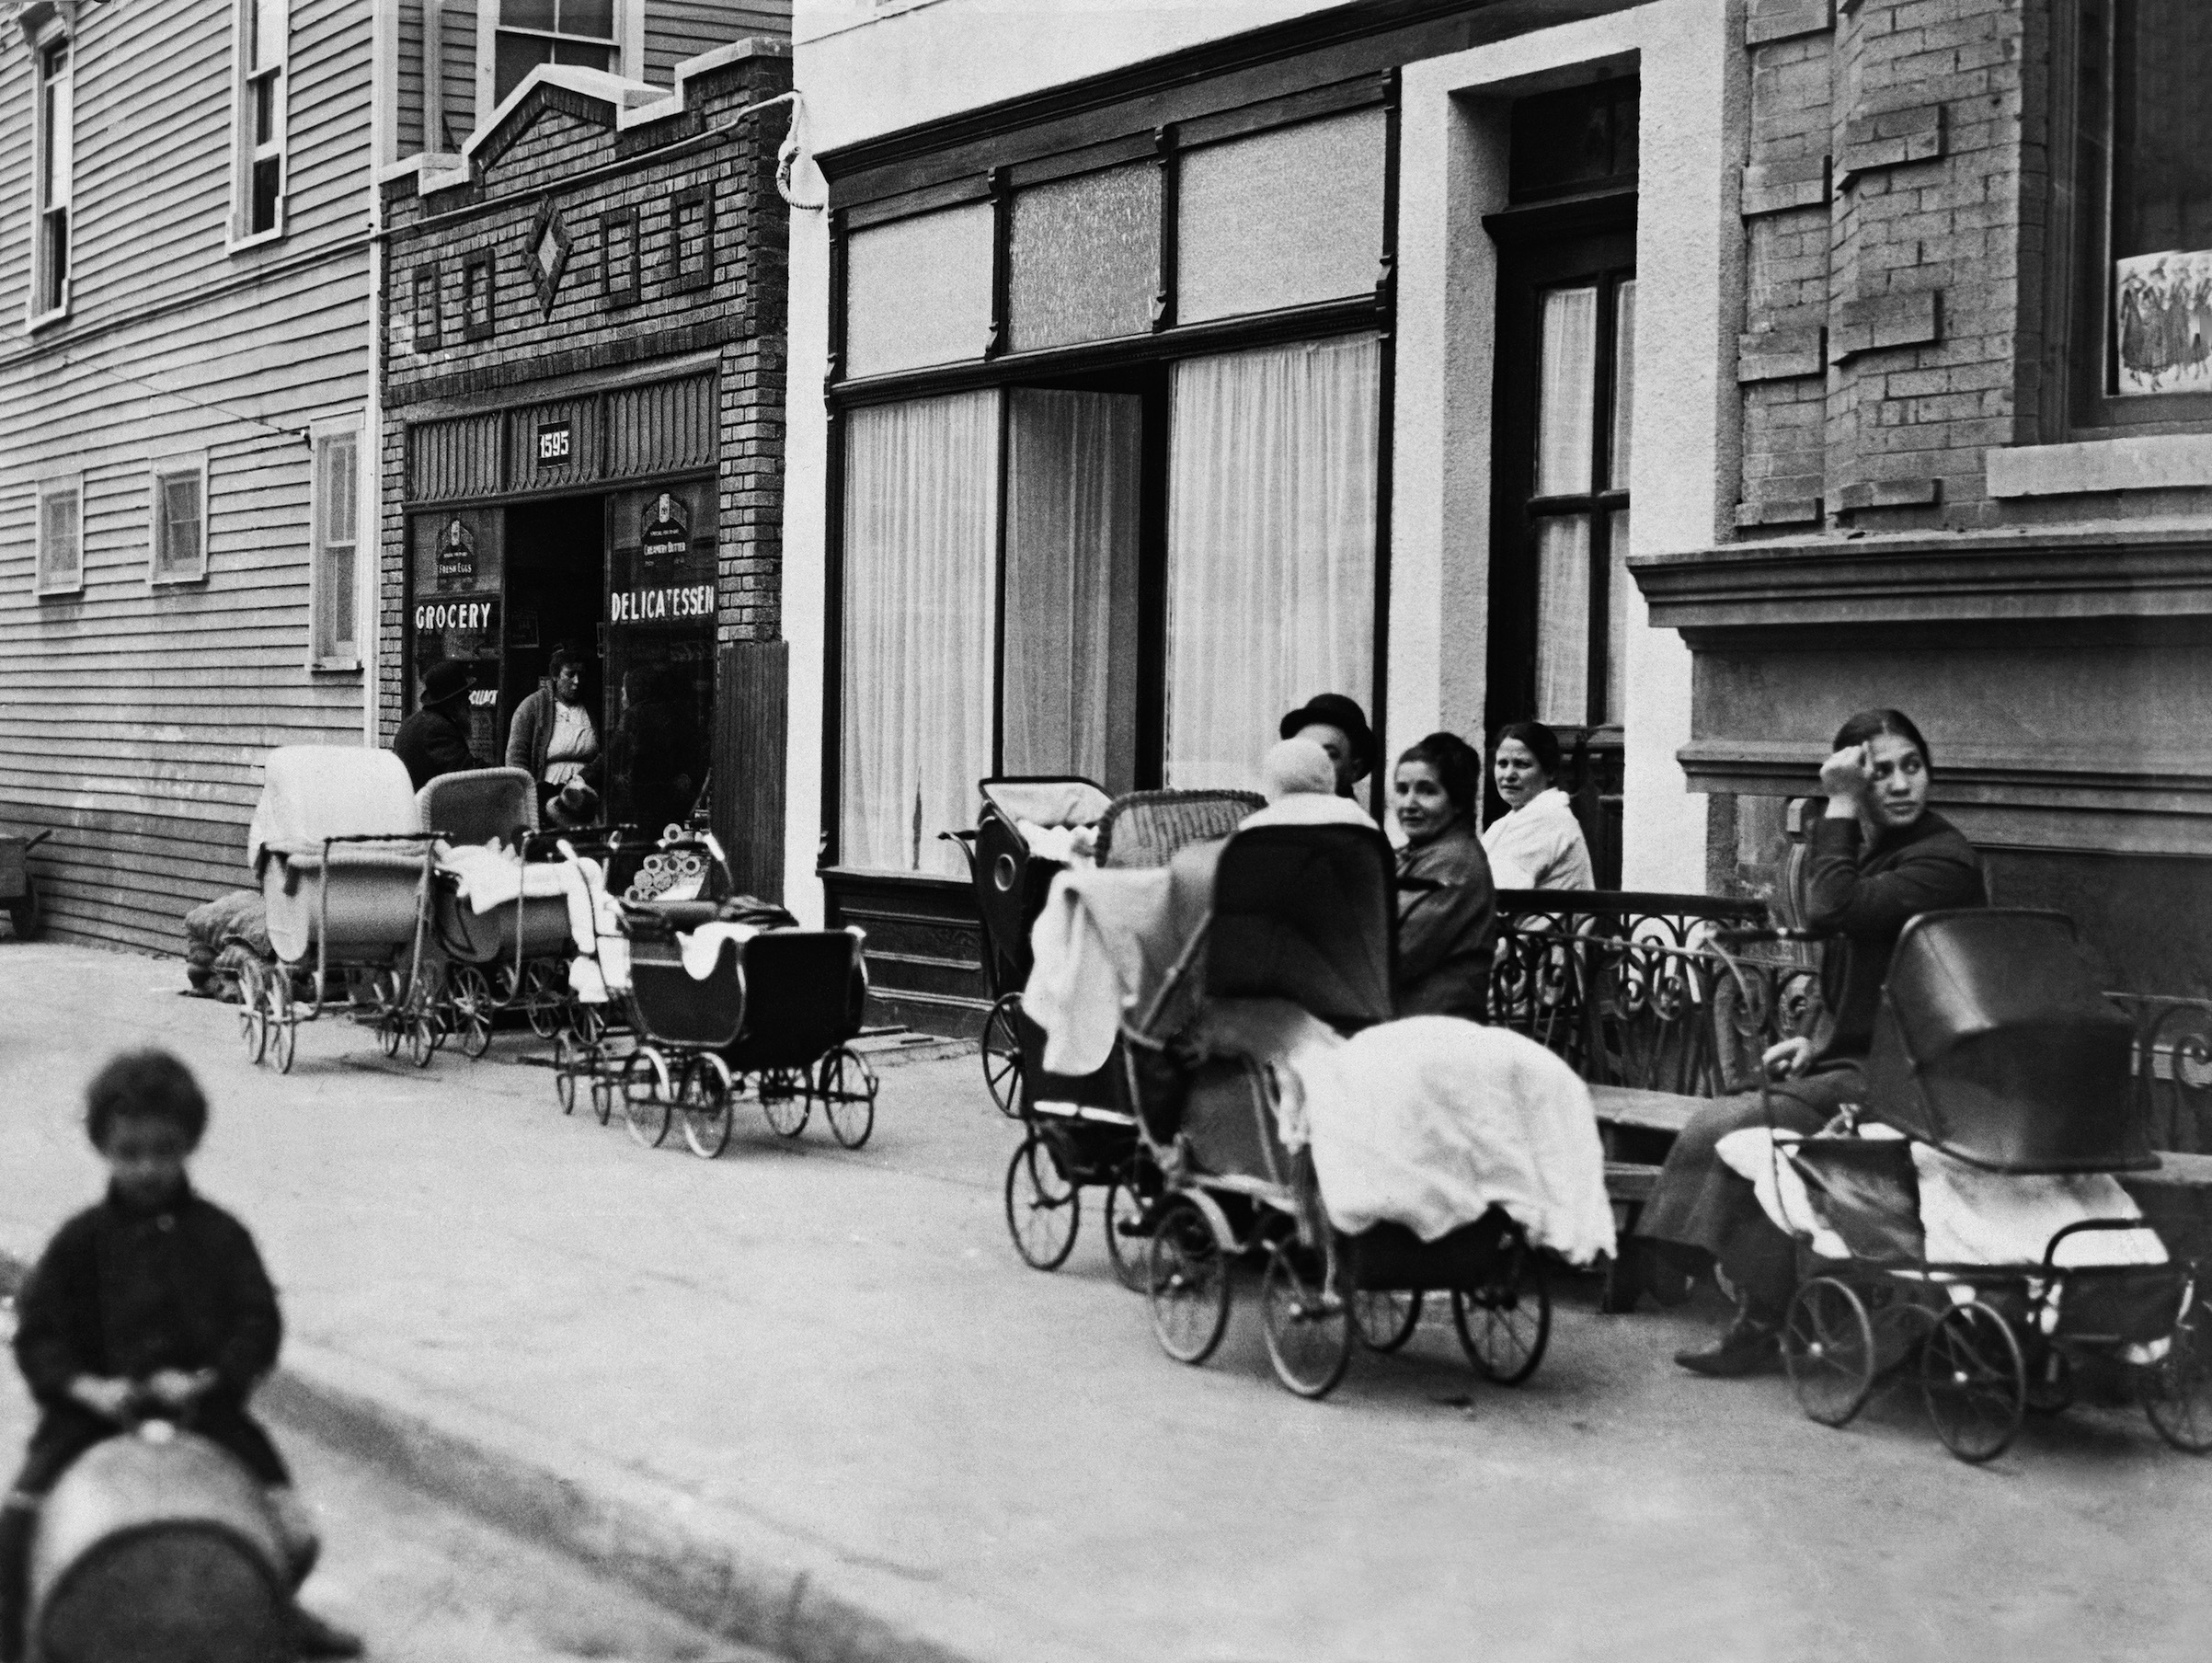 Women and men sitting with baby carriages in front of the Sanger Clinic on Amber Street in Brooklyn, N.Y., in October of 1916.